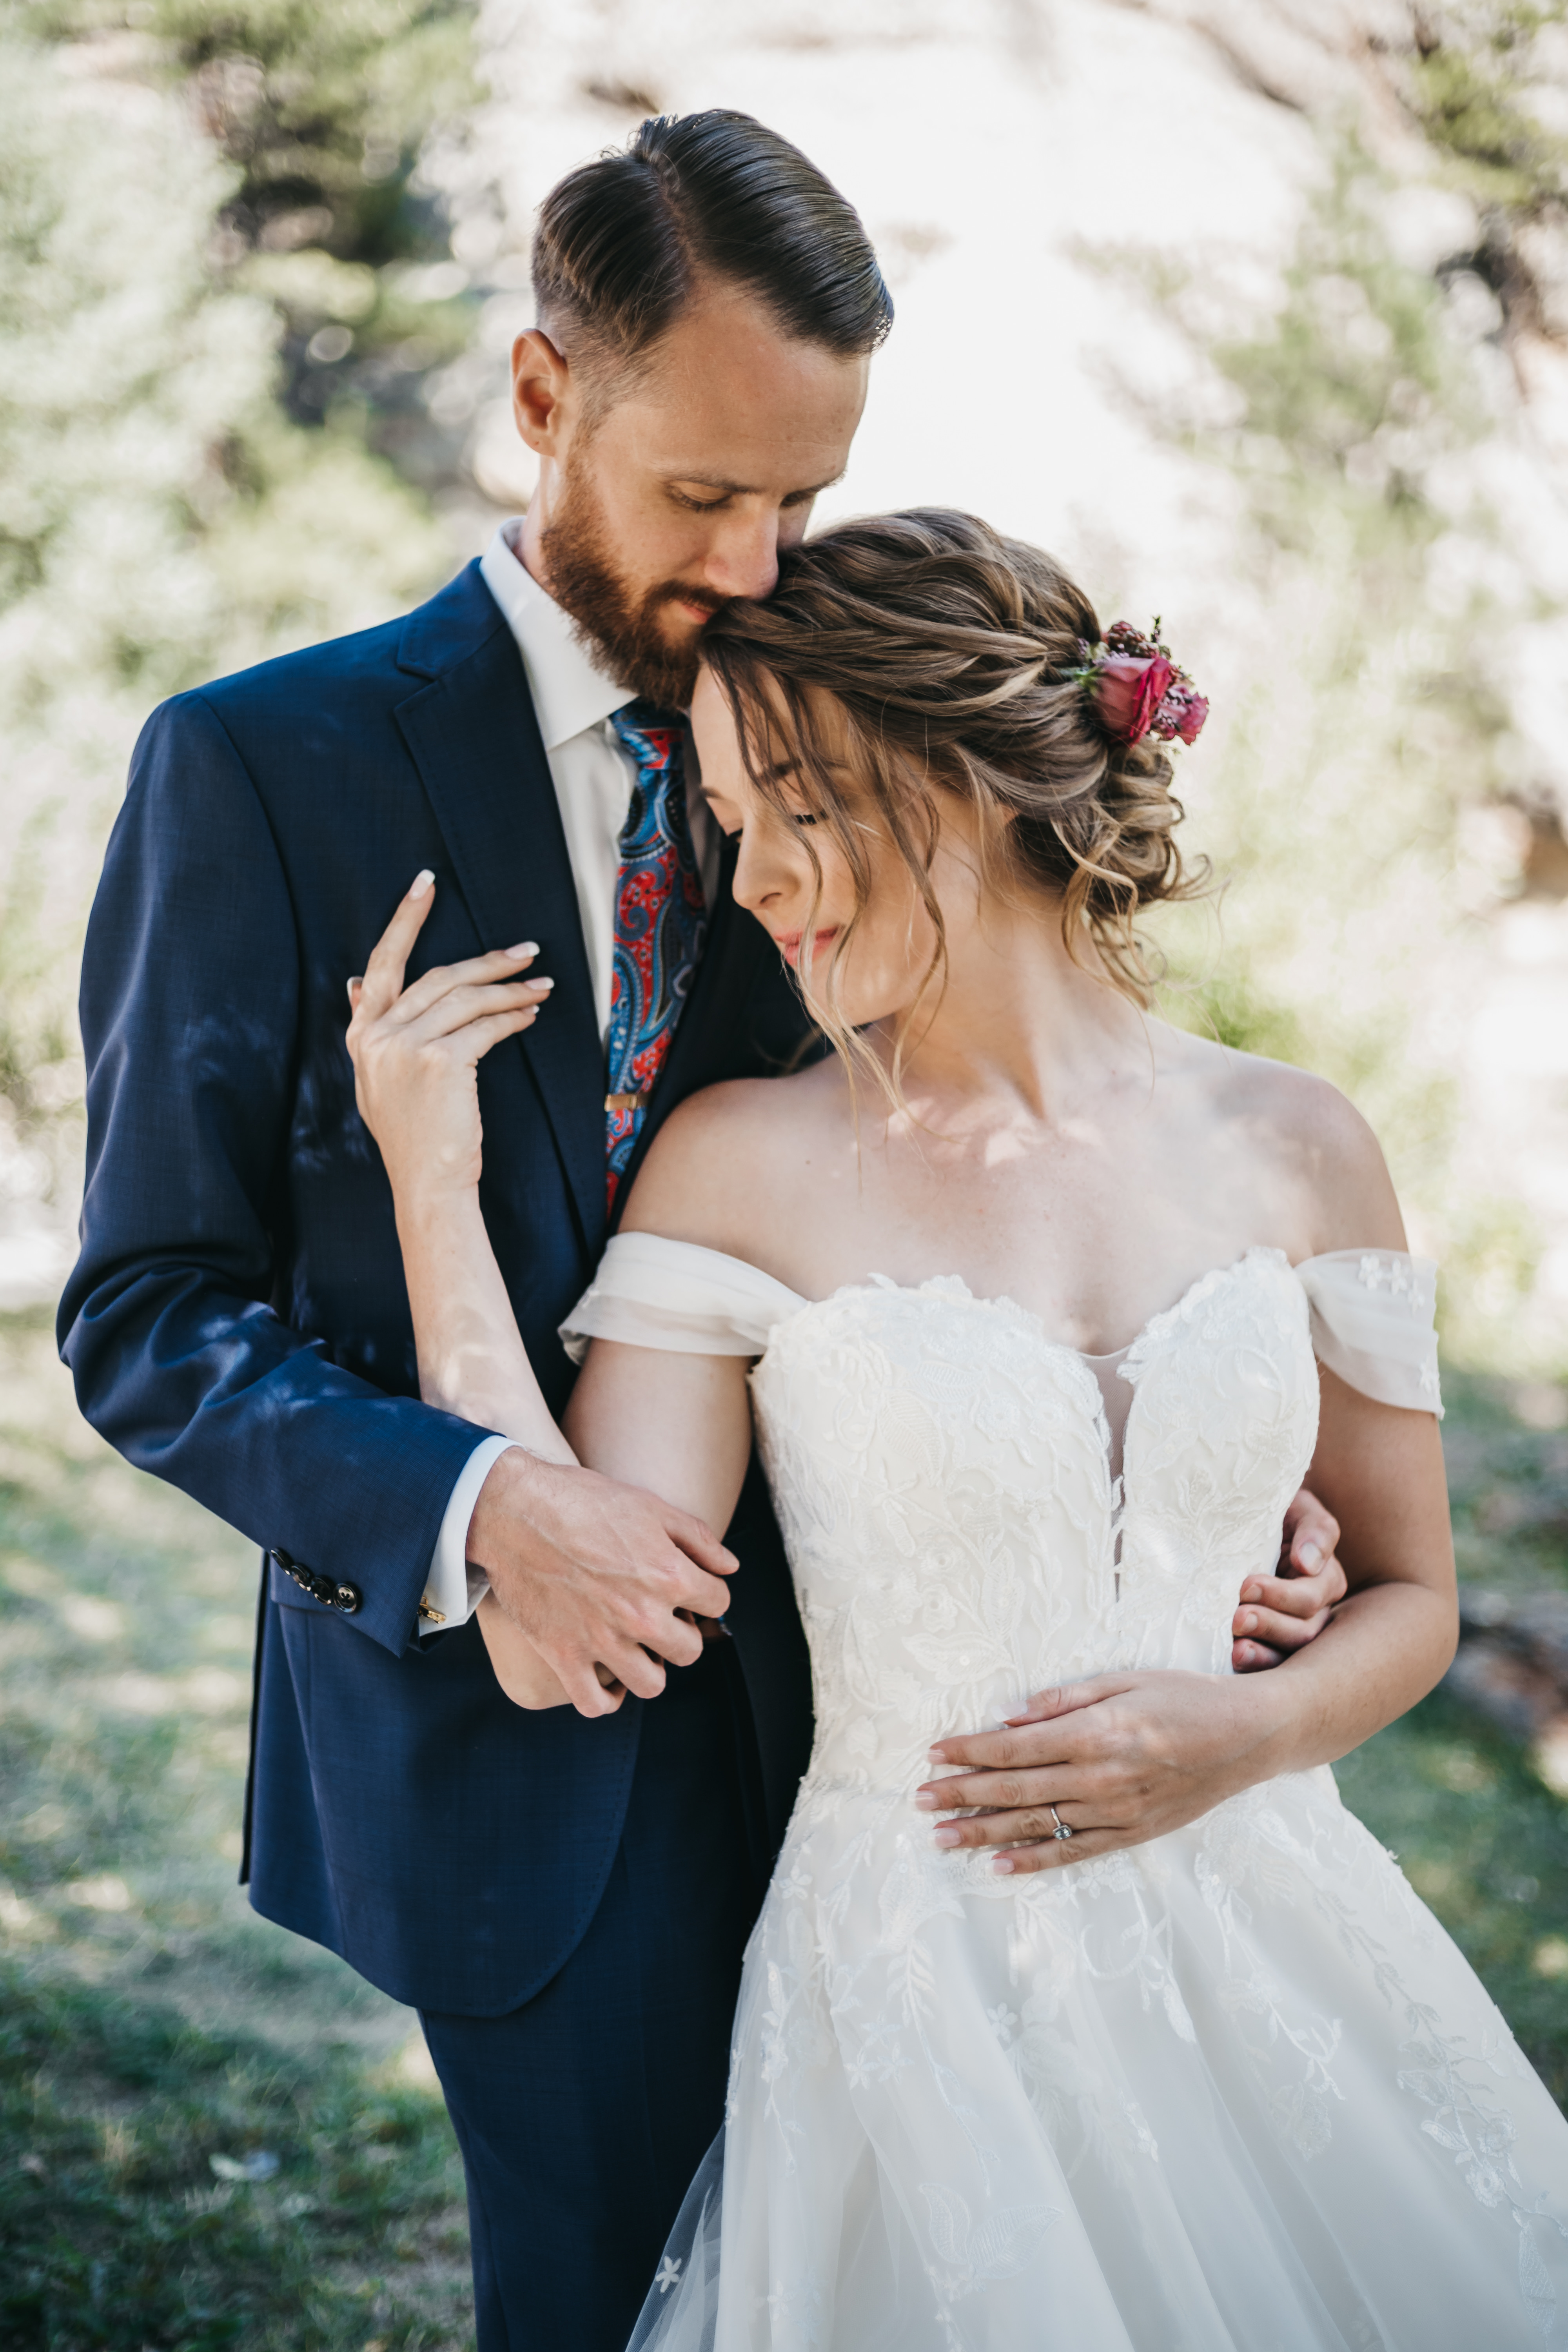 Brittany & Eric Tie the Knot